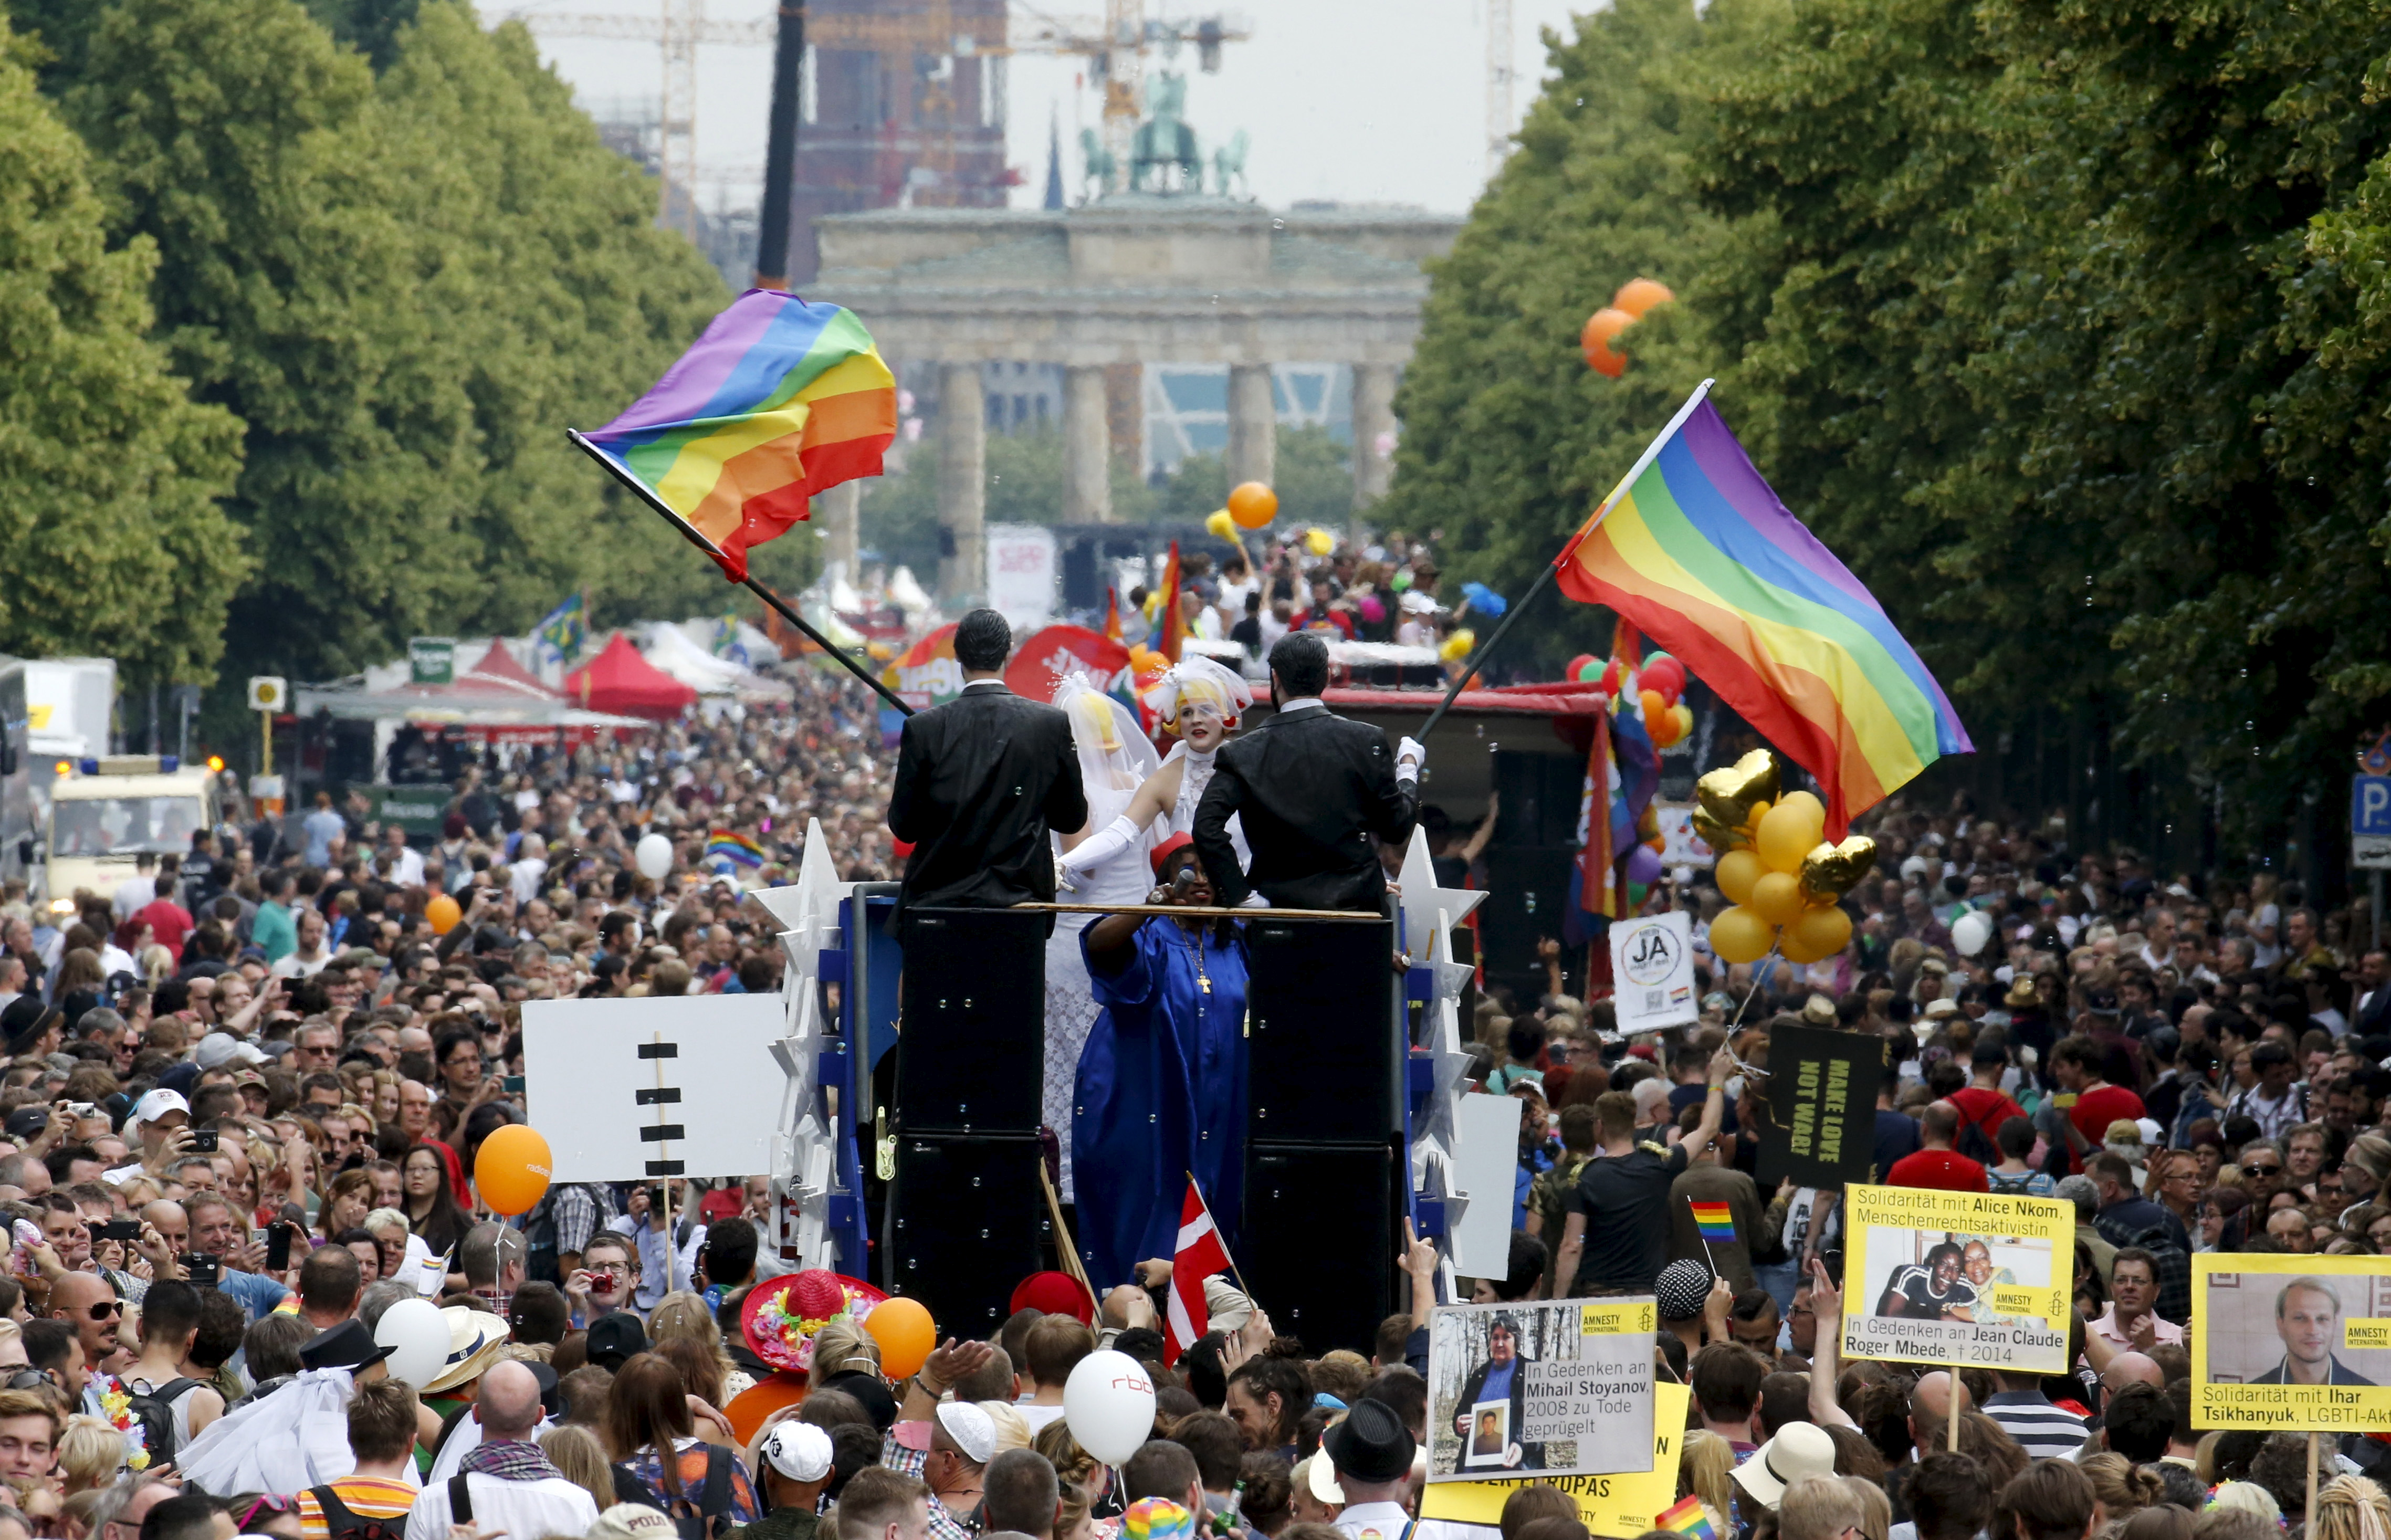 People participate in the annual Christopher Street Day parade, held in celebration and demonstration of the rights of LBGT people, in front of the Brandenburg Gate in Berlin, Germany, June 27, 2015. Photo by Fabrizio Bensch/Reuters